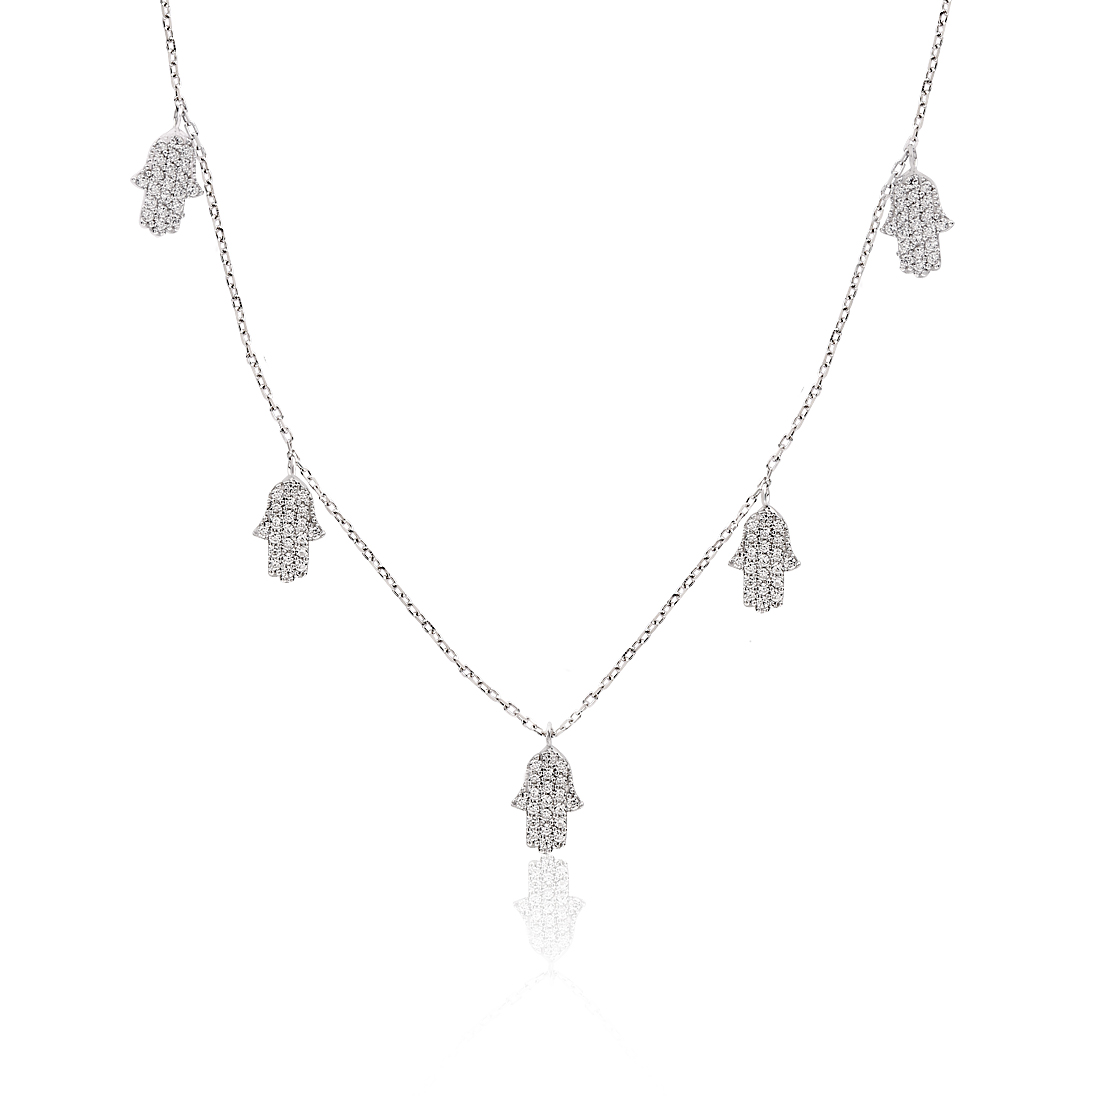 Hamsa Khailo Silver Necklace - High Street Jewelry